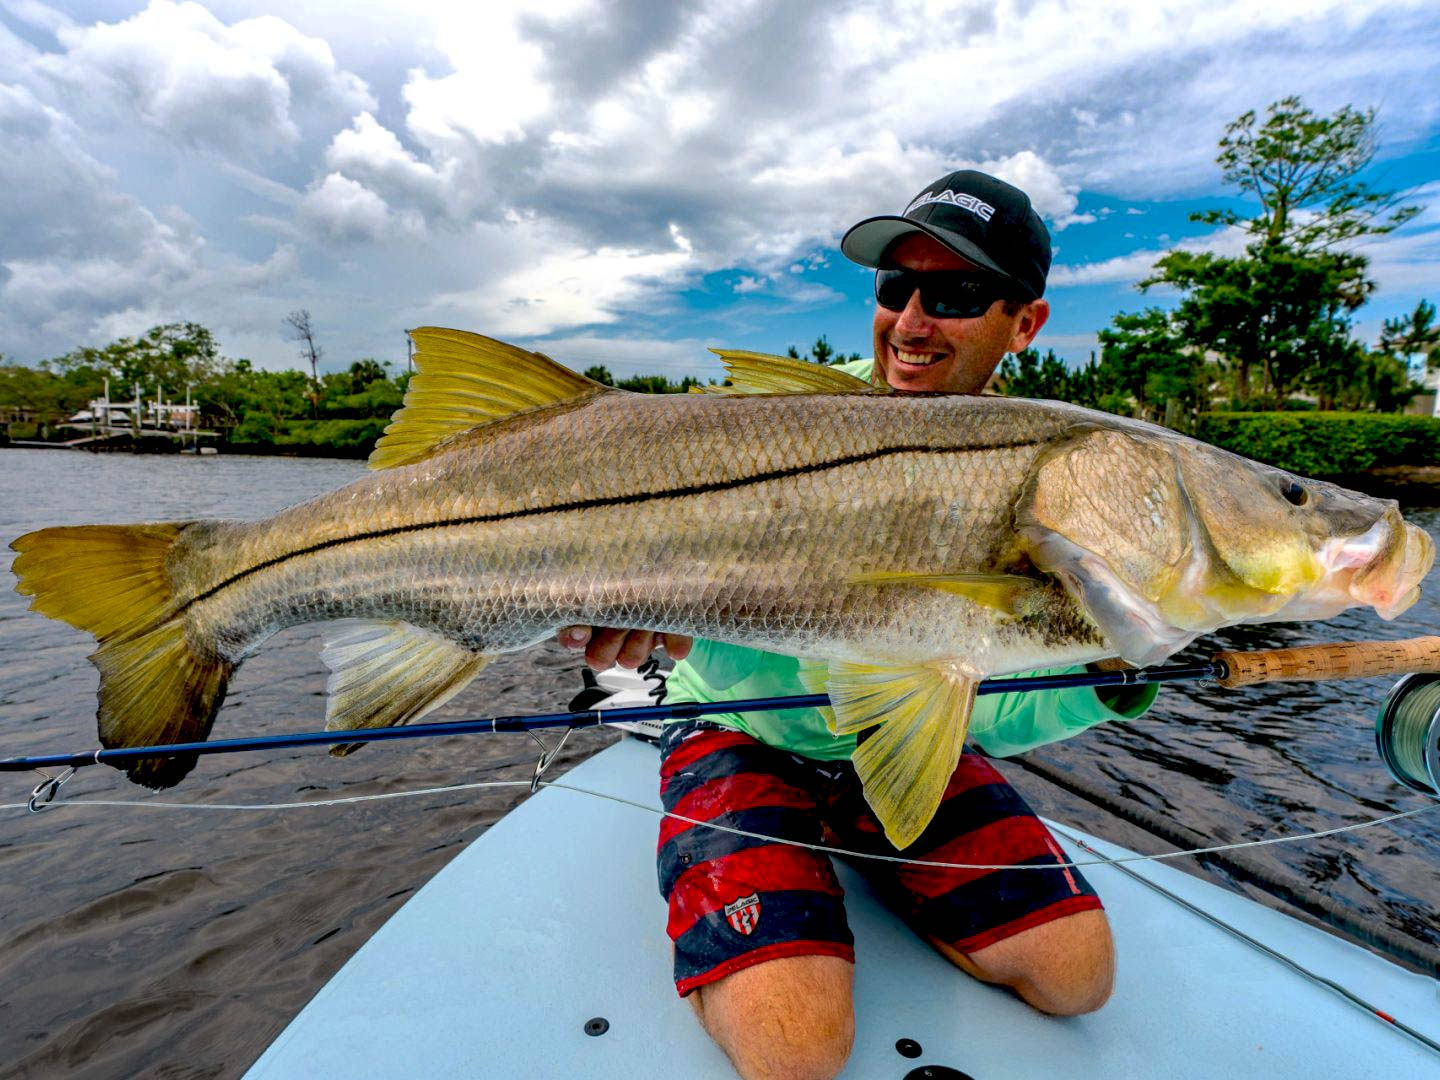 A man holding a big Snook on a boat in Jupiter, Florida